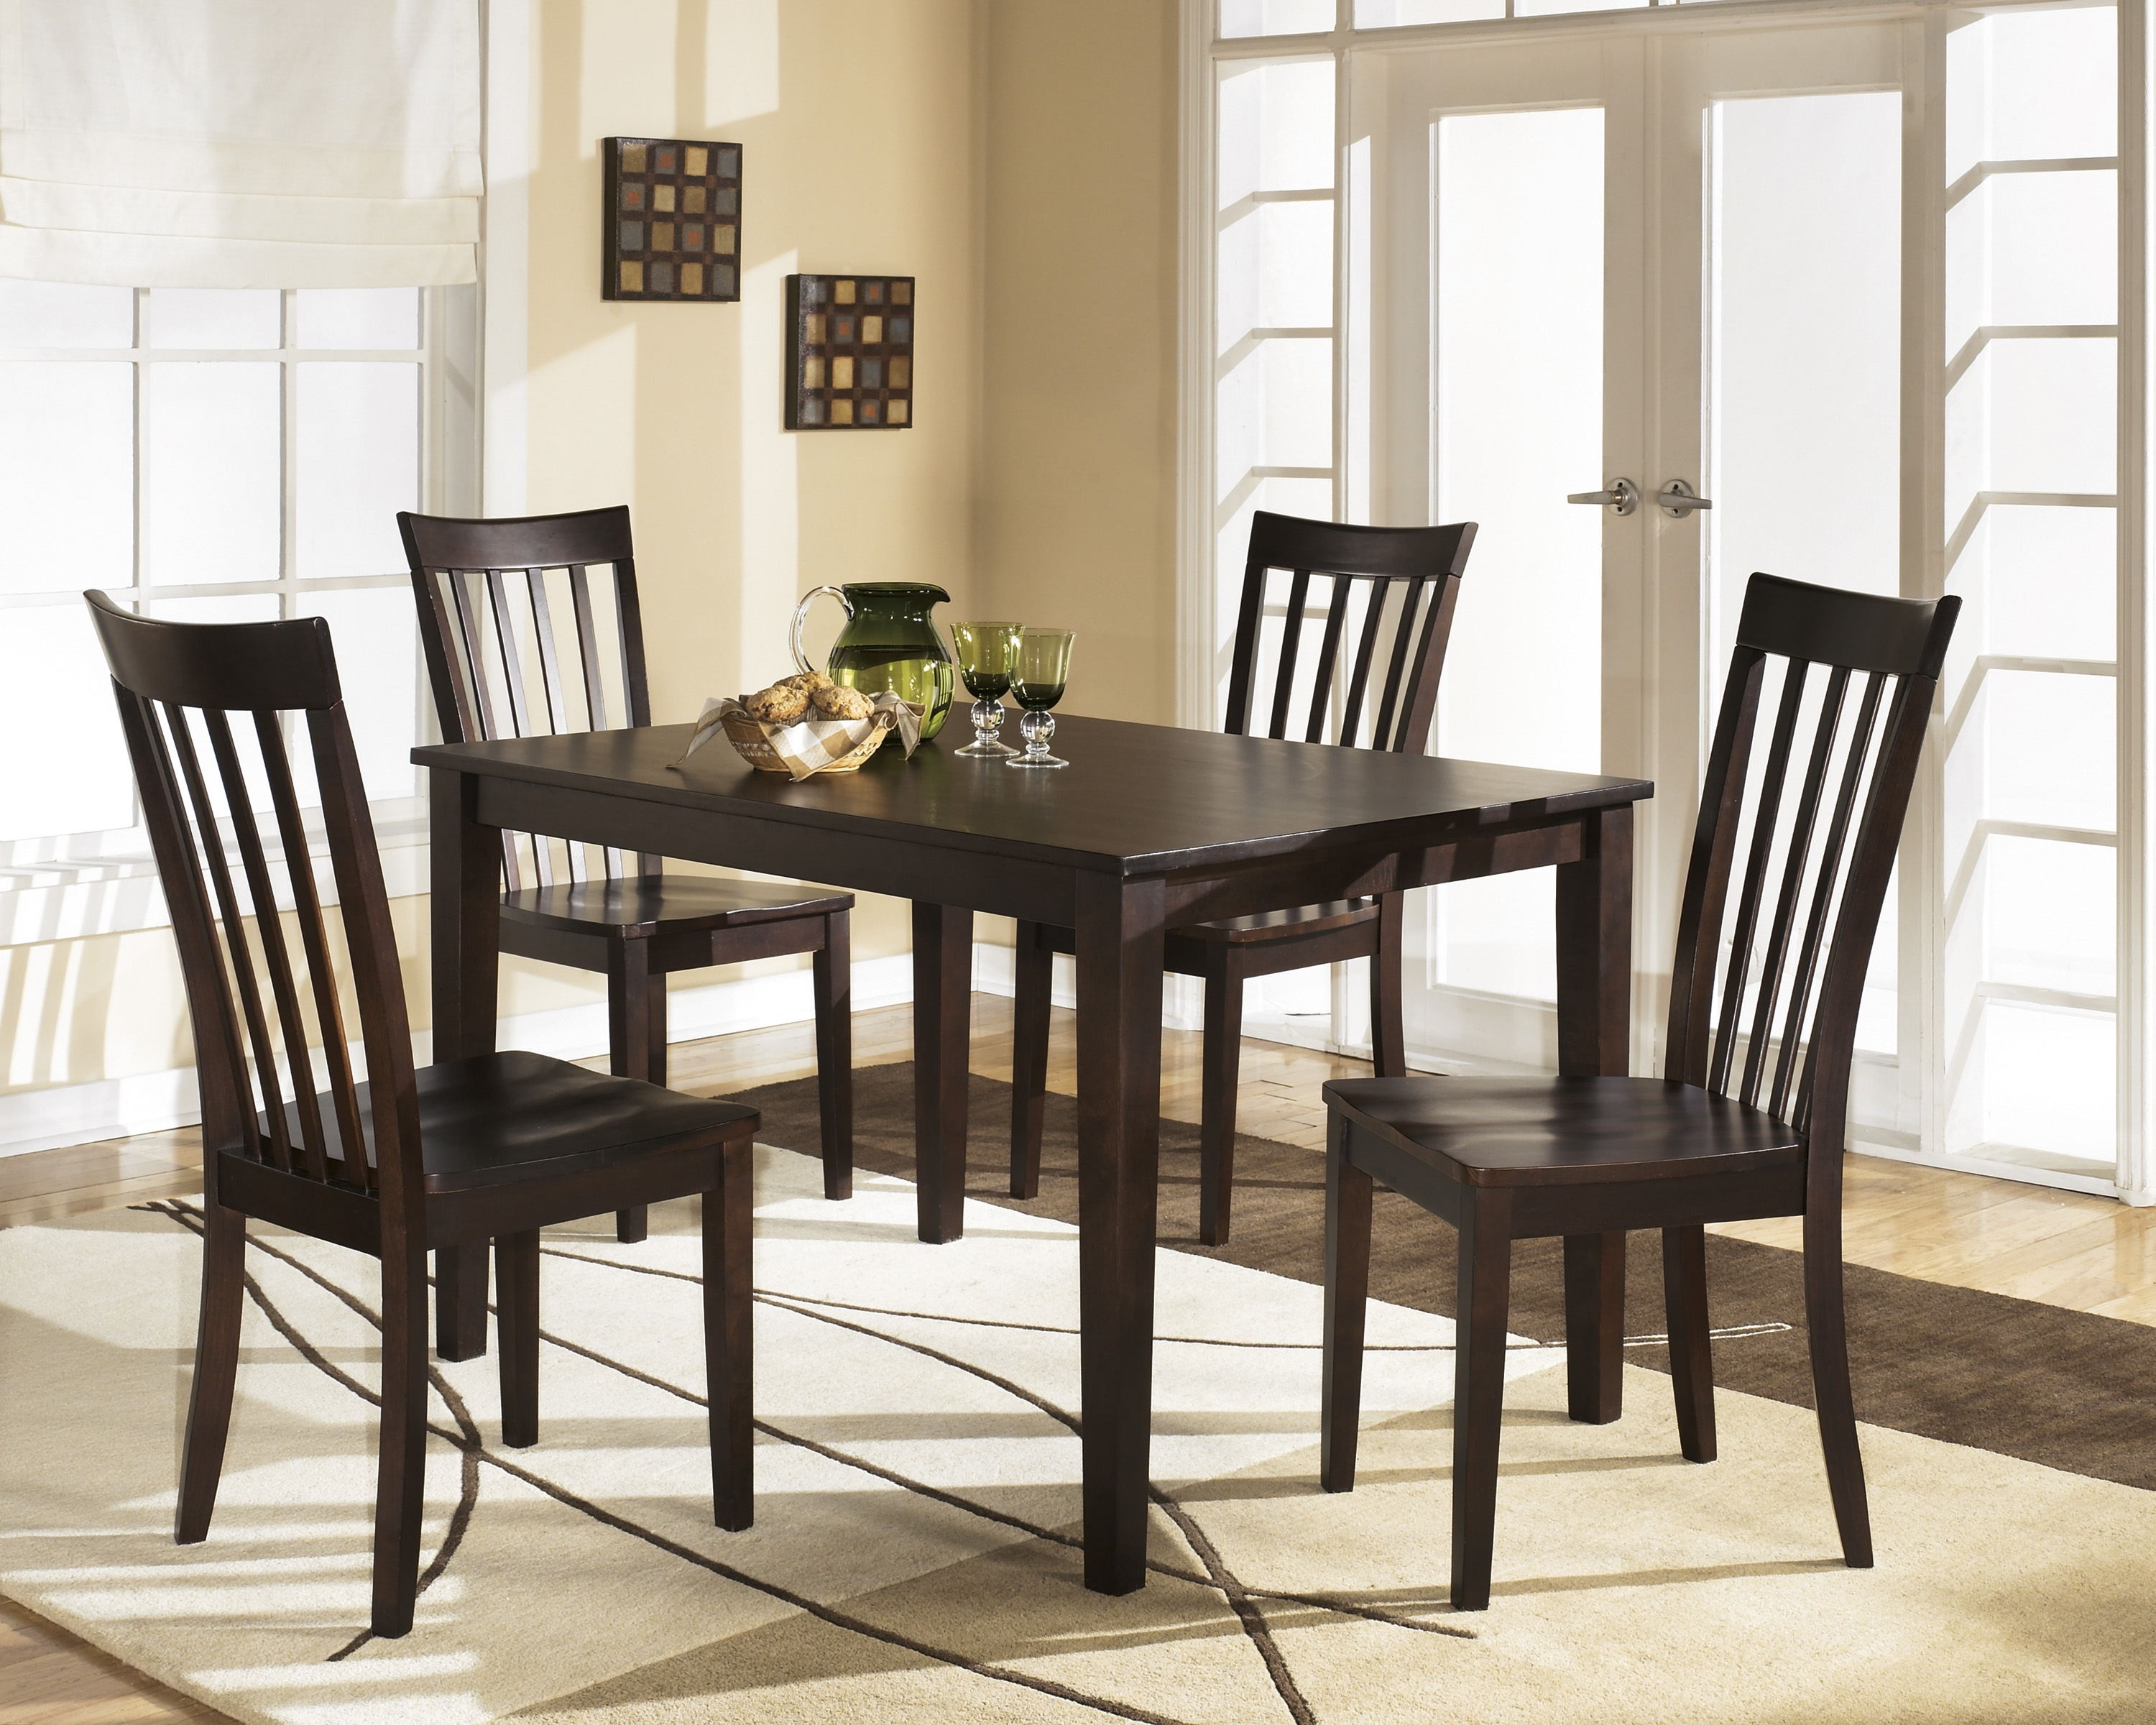 Most Popular Caira 9 Piece Extension Dining Sets With Diamond Back Chairs Pertaining To Https://www.localfurnitureoutlet/mattresses.html 2018 07 18 (Gallery 22 of 25)